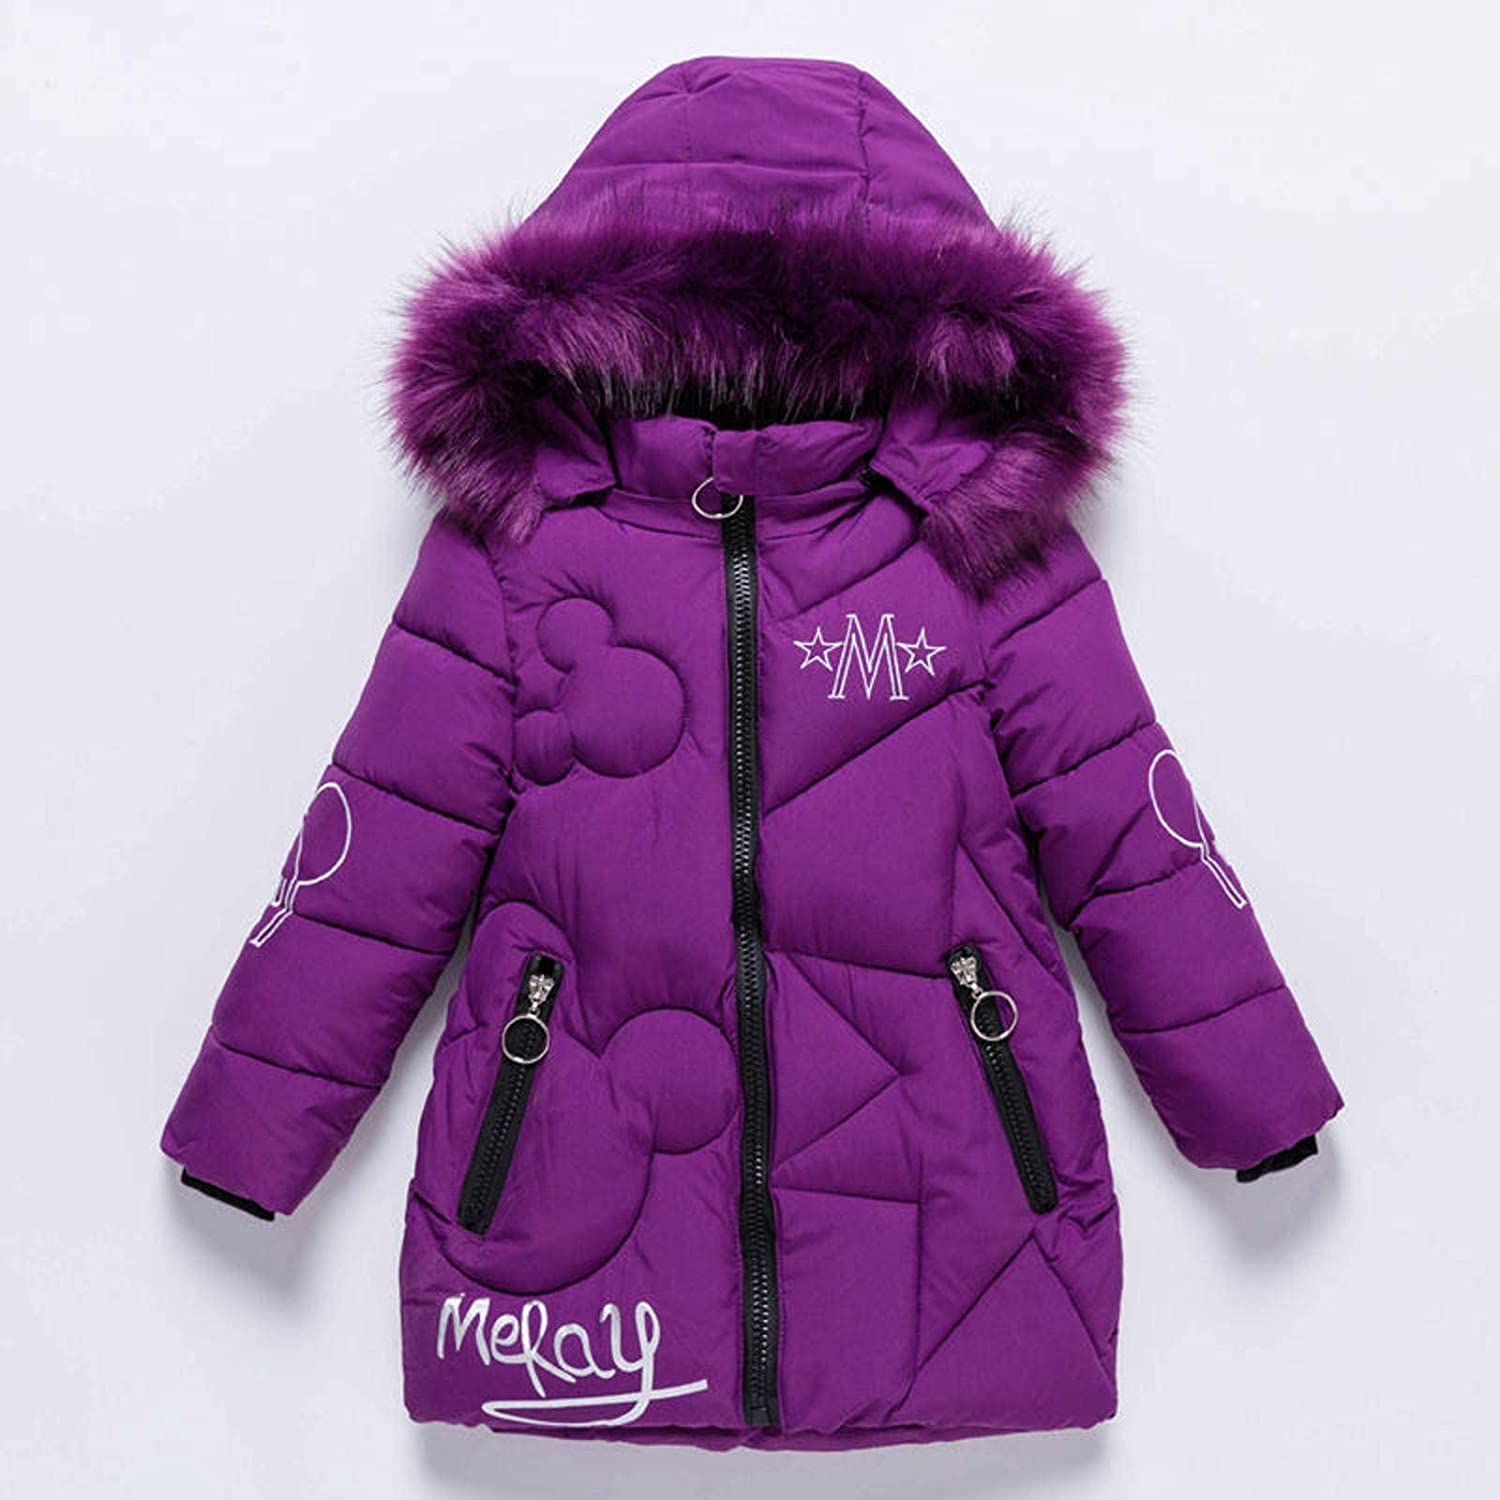 N\C Girls' Down Jackets Our Max 72% OFF shop most popular Clothing Winter Children's